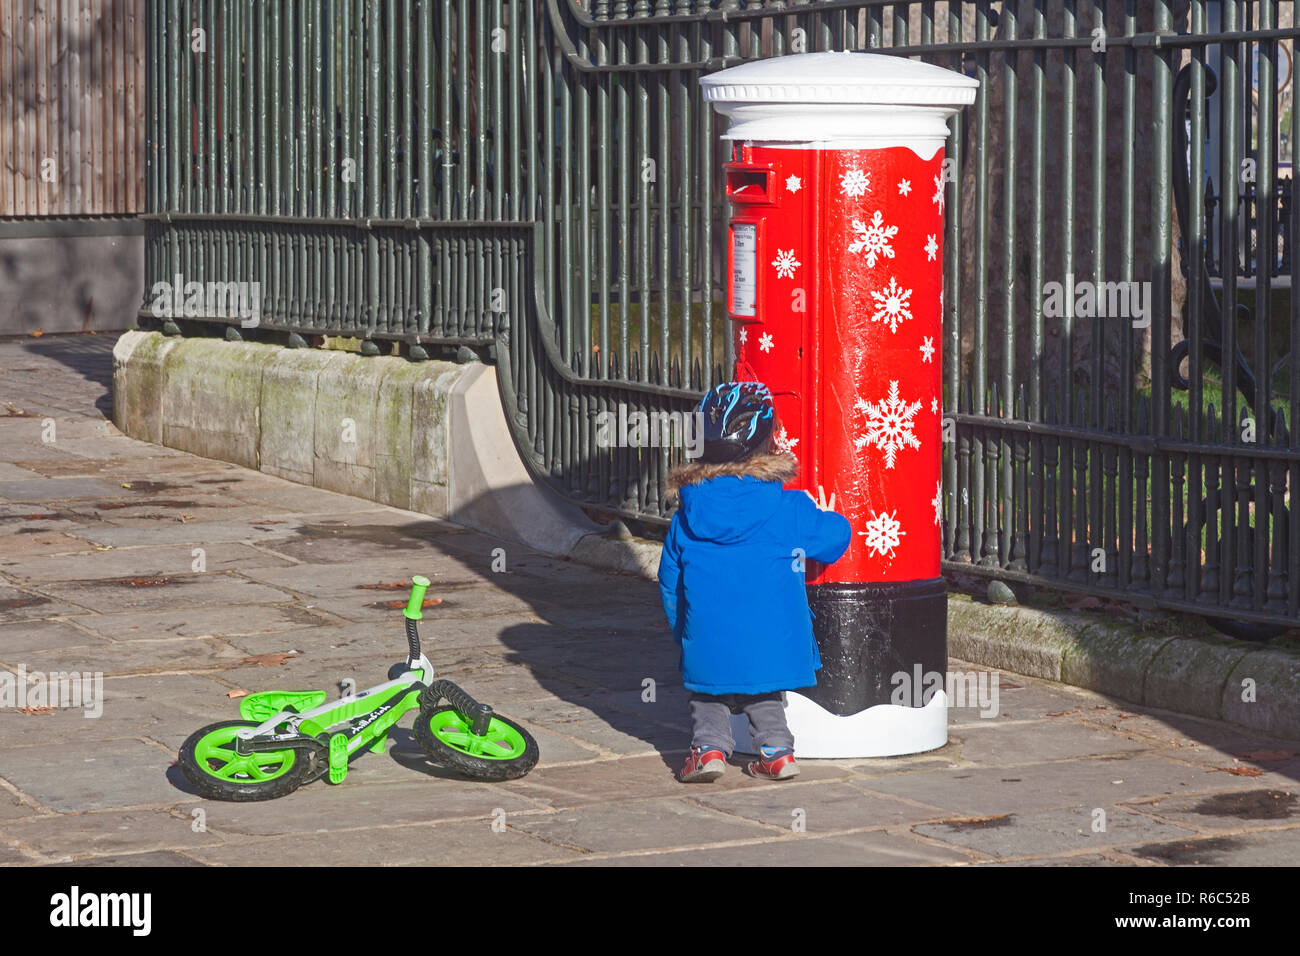 London, Greenwich.  December 2018. A little girl admires a Royal Mail 'singing' musical postbox with its Yuletide decoration. - Stock Image